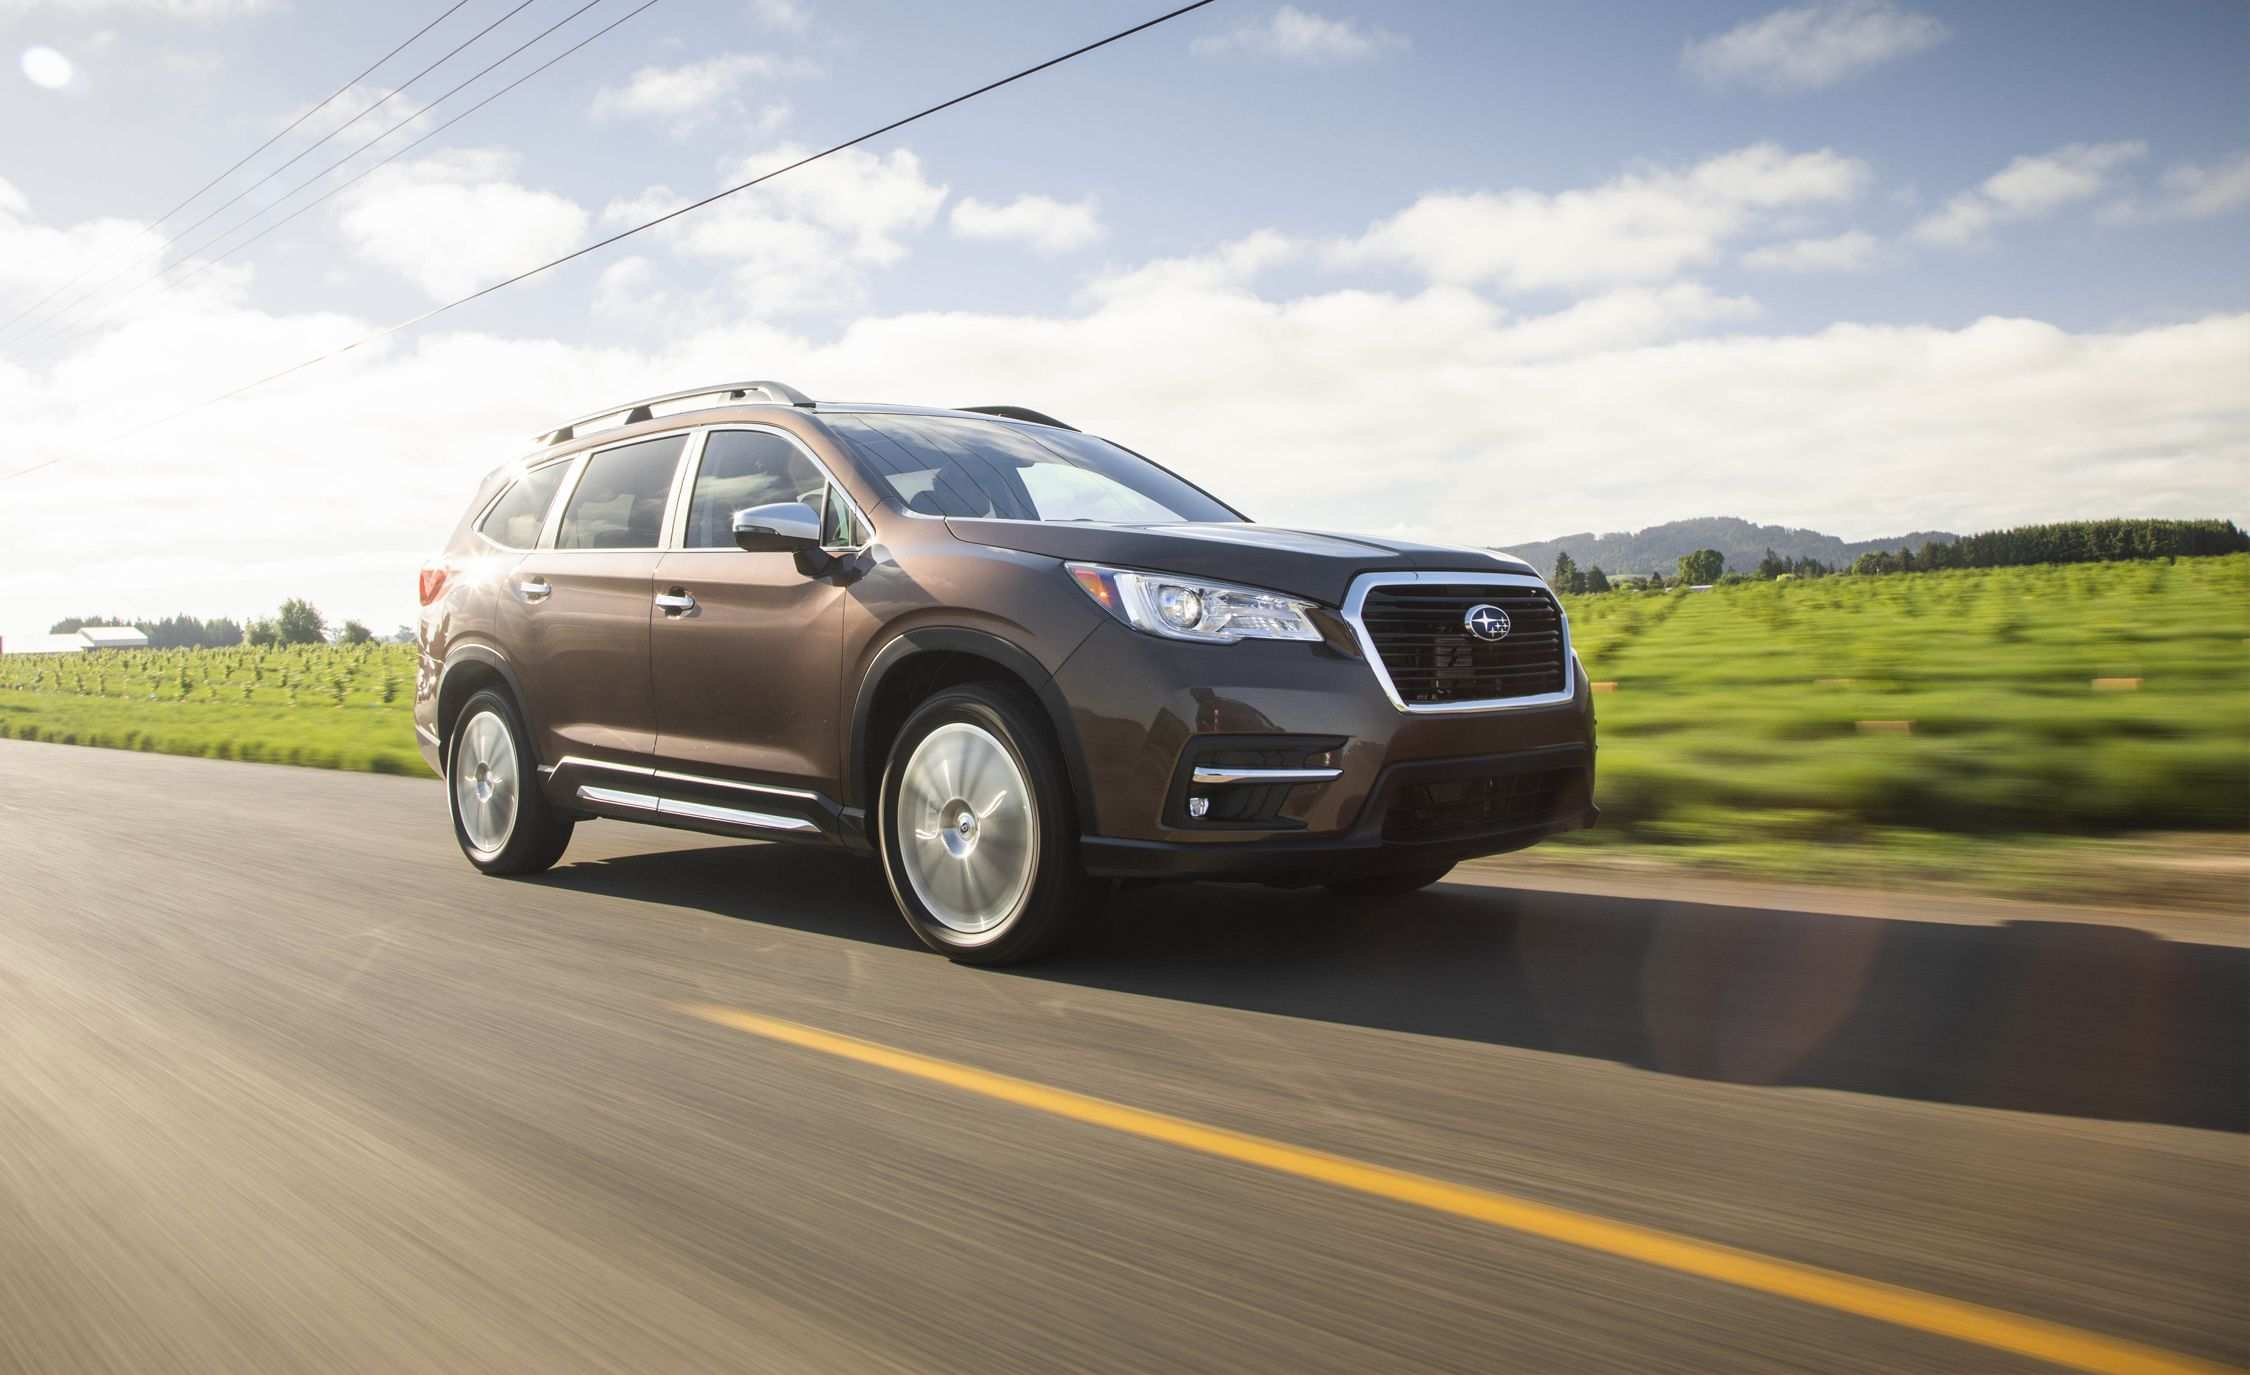 27 Best Review 2019 Subaru Ascent News Specs and Review with 2019 Subaru Ascent News